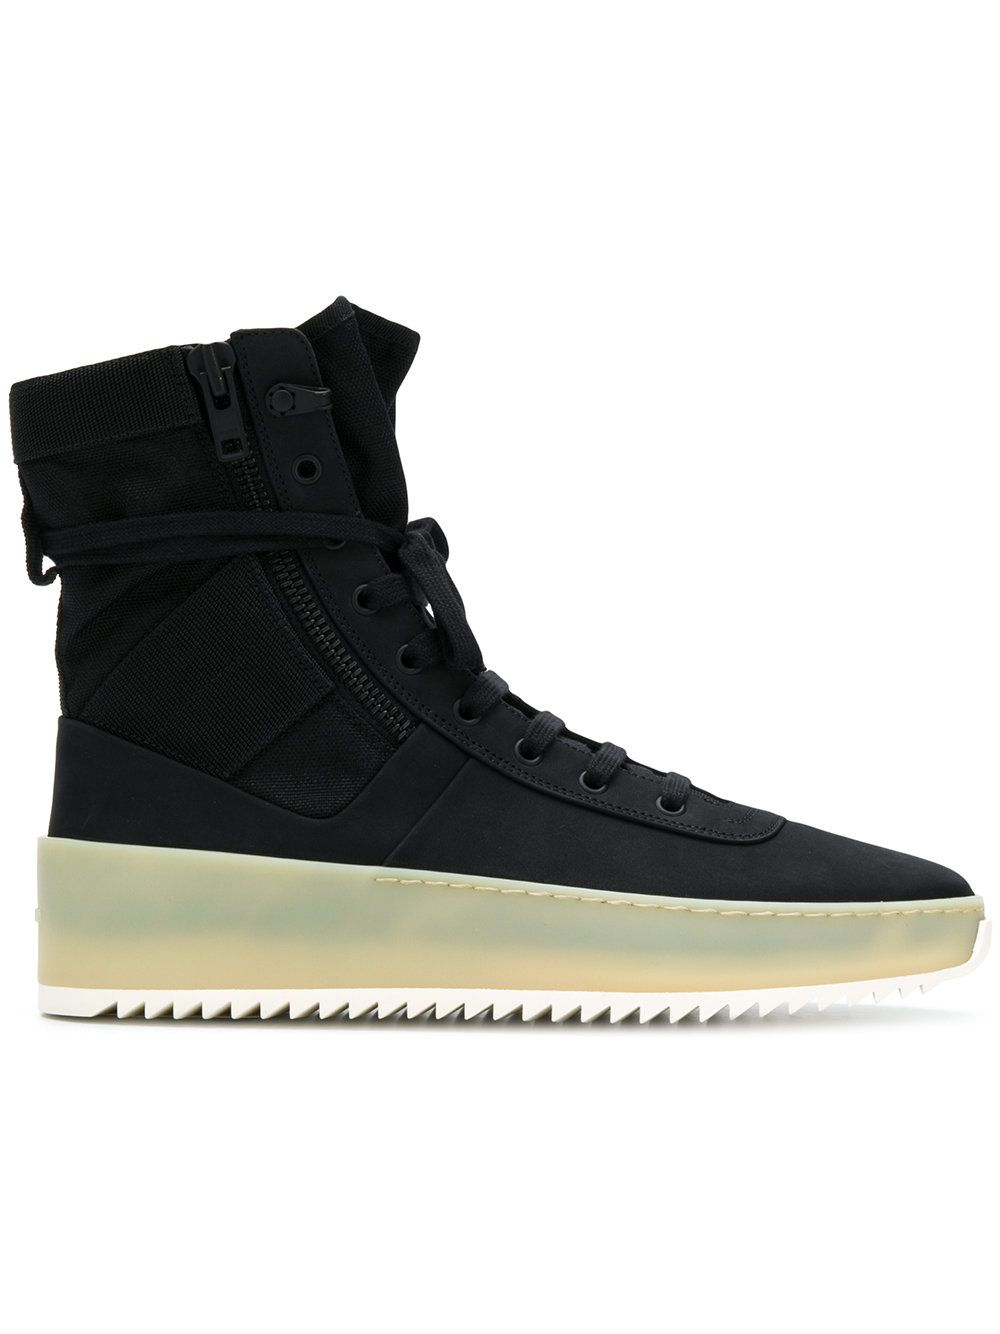 High Top Of God Platform Sneakers SneakersShoes Fear mwvNy80On